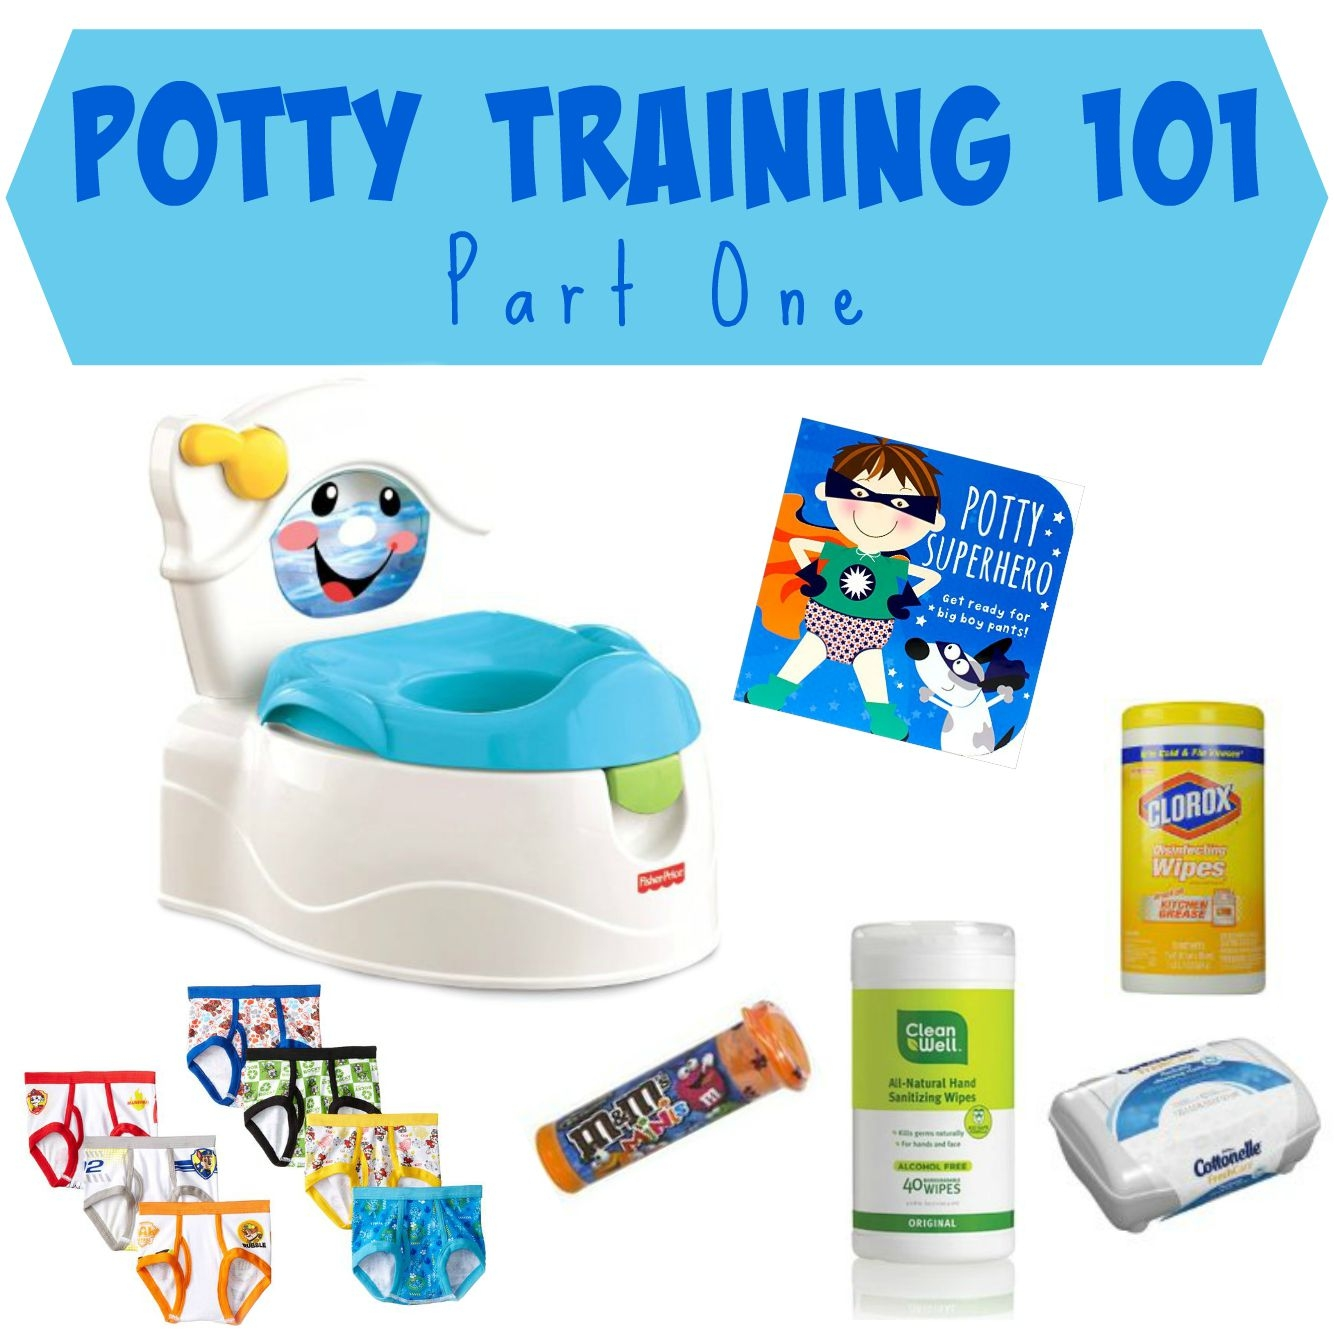 Southern Made Blog | Potty Training 101 | Part One